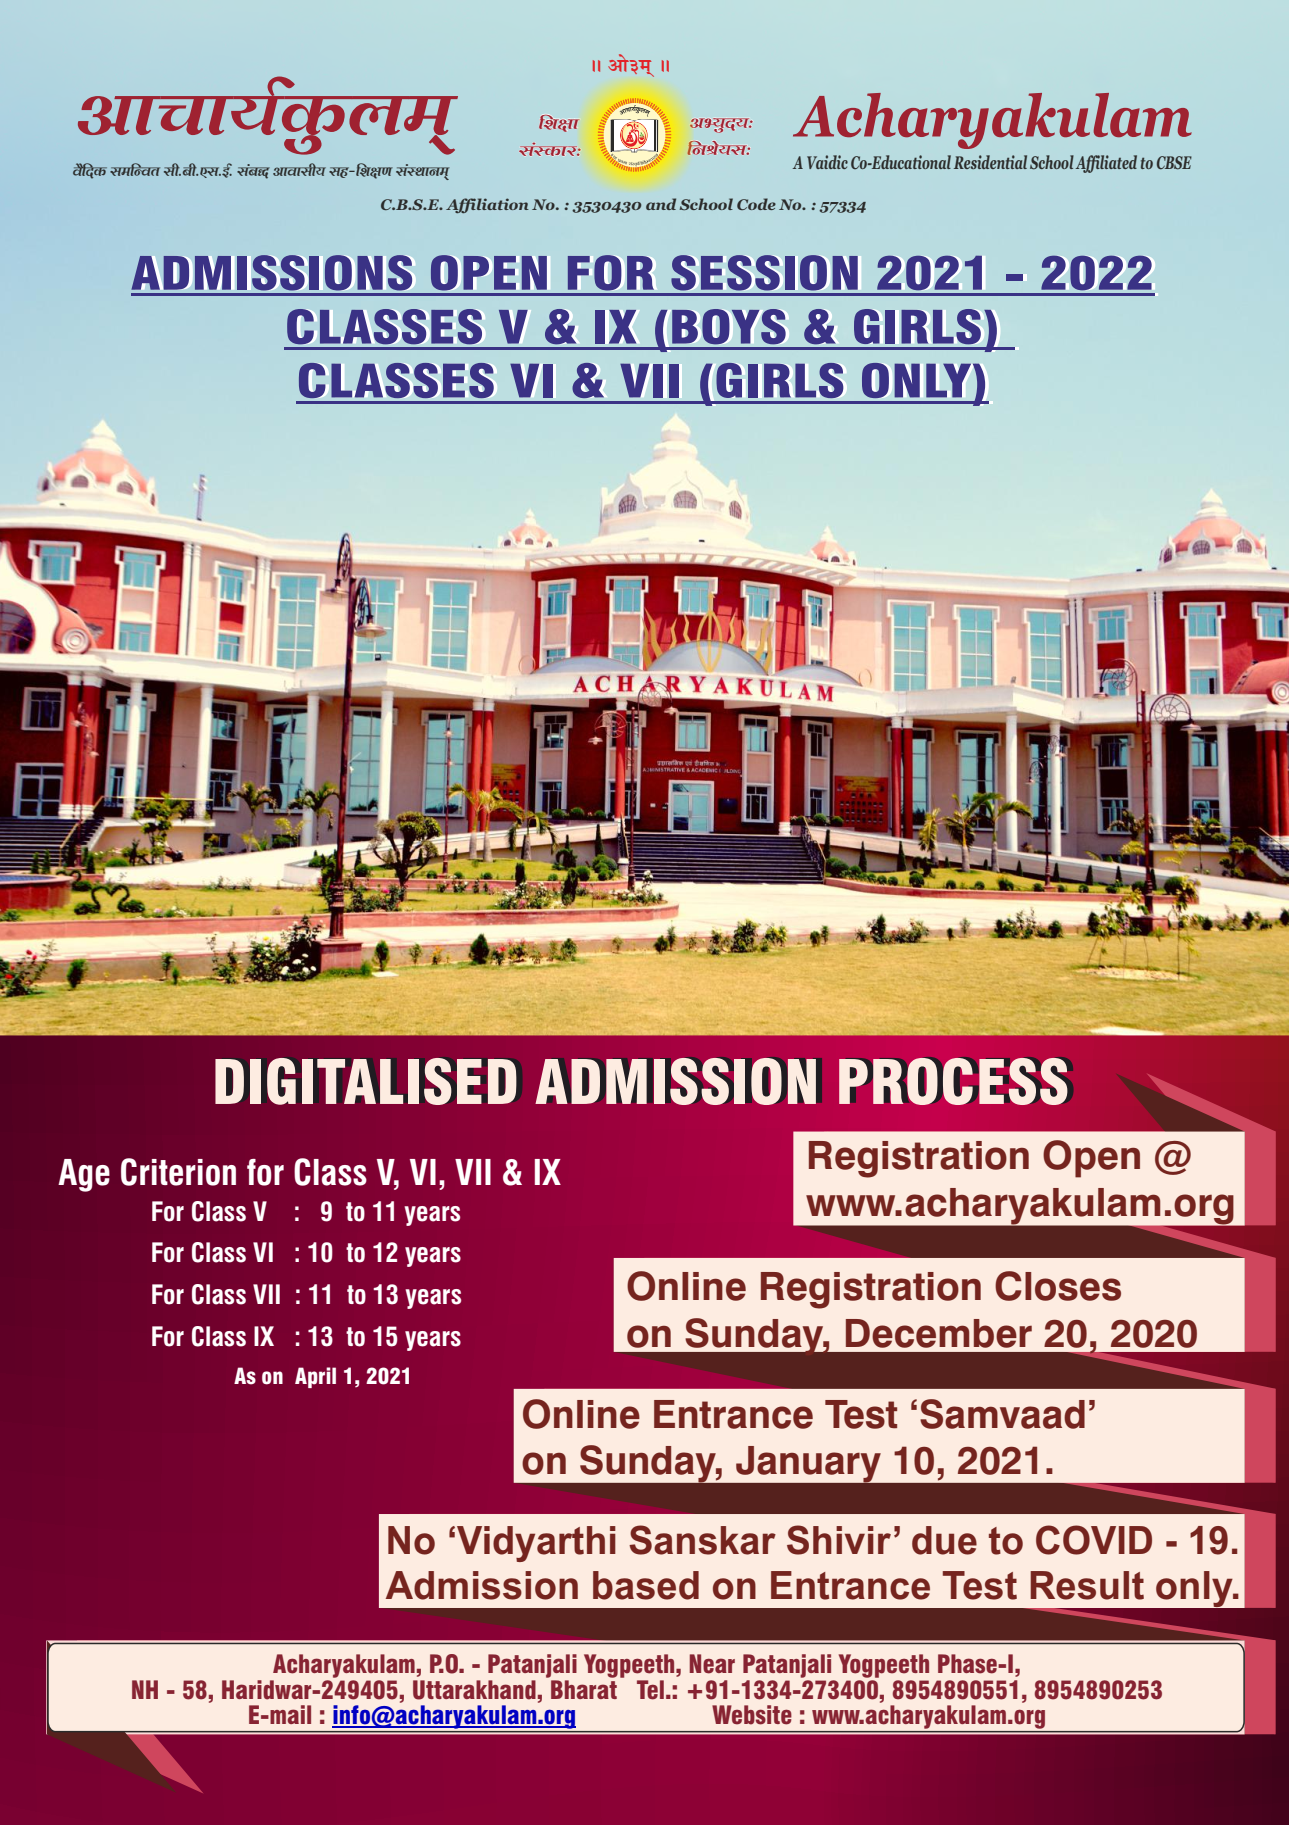 ADMISSIONS OPEN FOR SESSION 2021 - 2022 CLASSES V & IX (BOYS & GIRLS) CLASSES VI & VII (GIRLS ONLY) IN Acharyakulam - 21 Days Remaining for Apply #educratsweb - educratsweb blog  IMAGES, GIF, ANIMATED GIF, WALLPAPER, STICKER FOR WHATSAPP & FACEBOOK